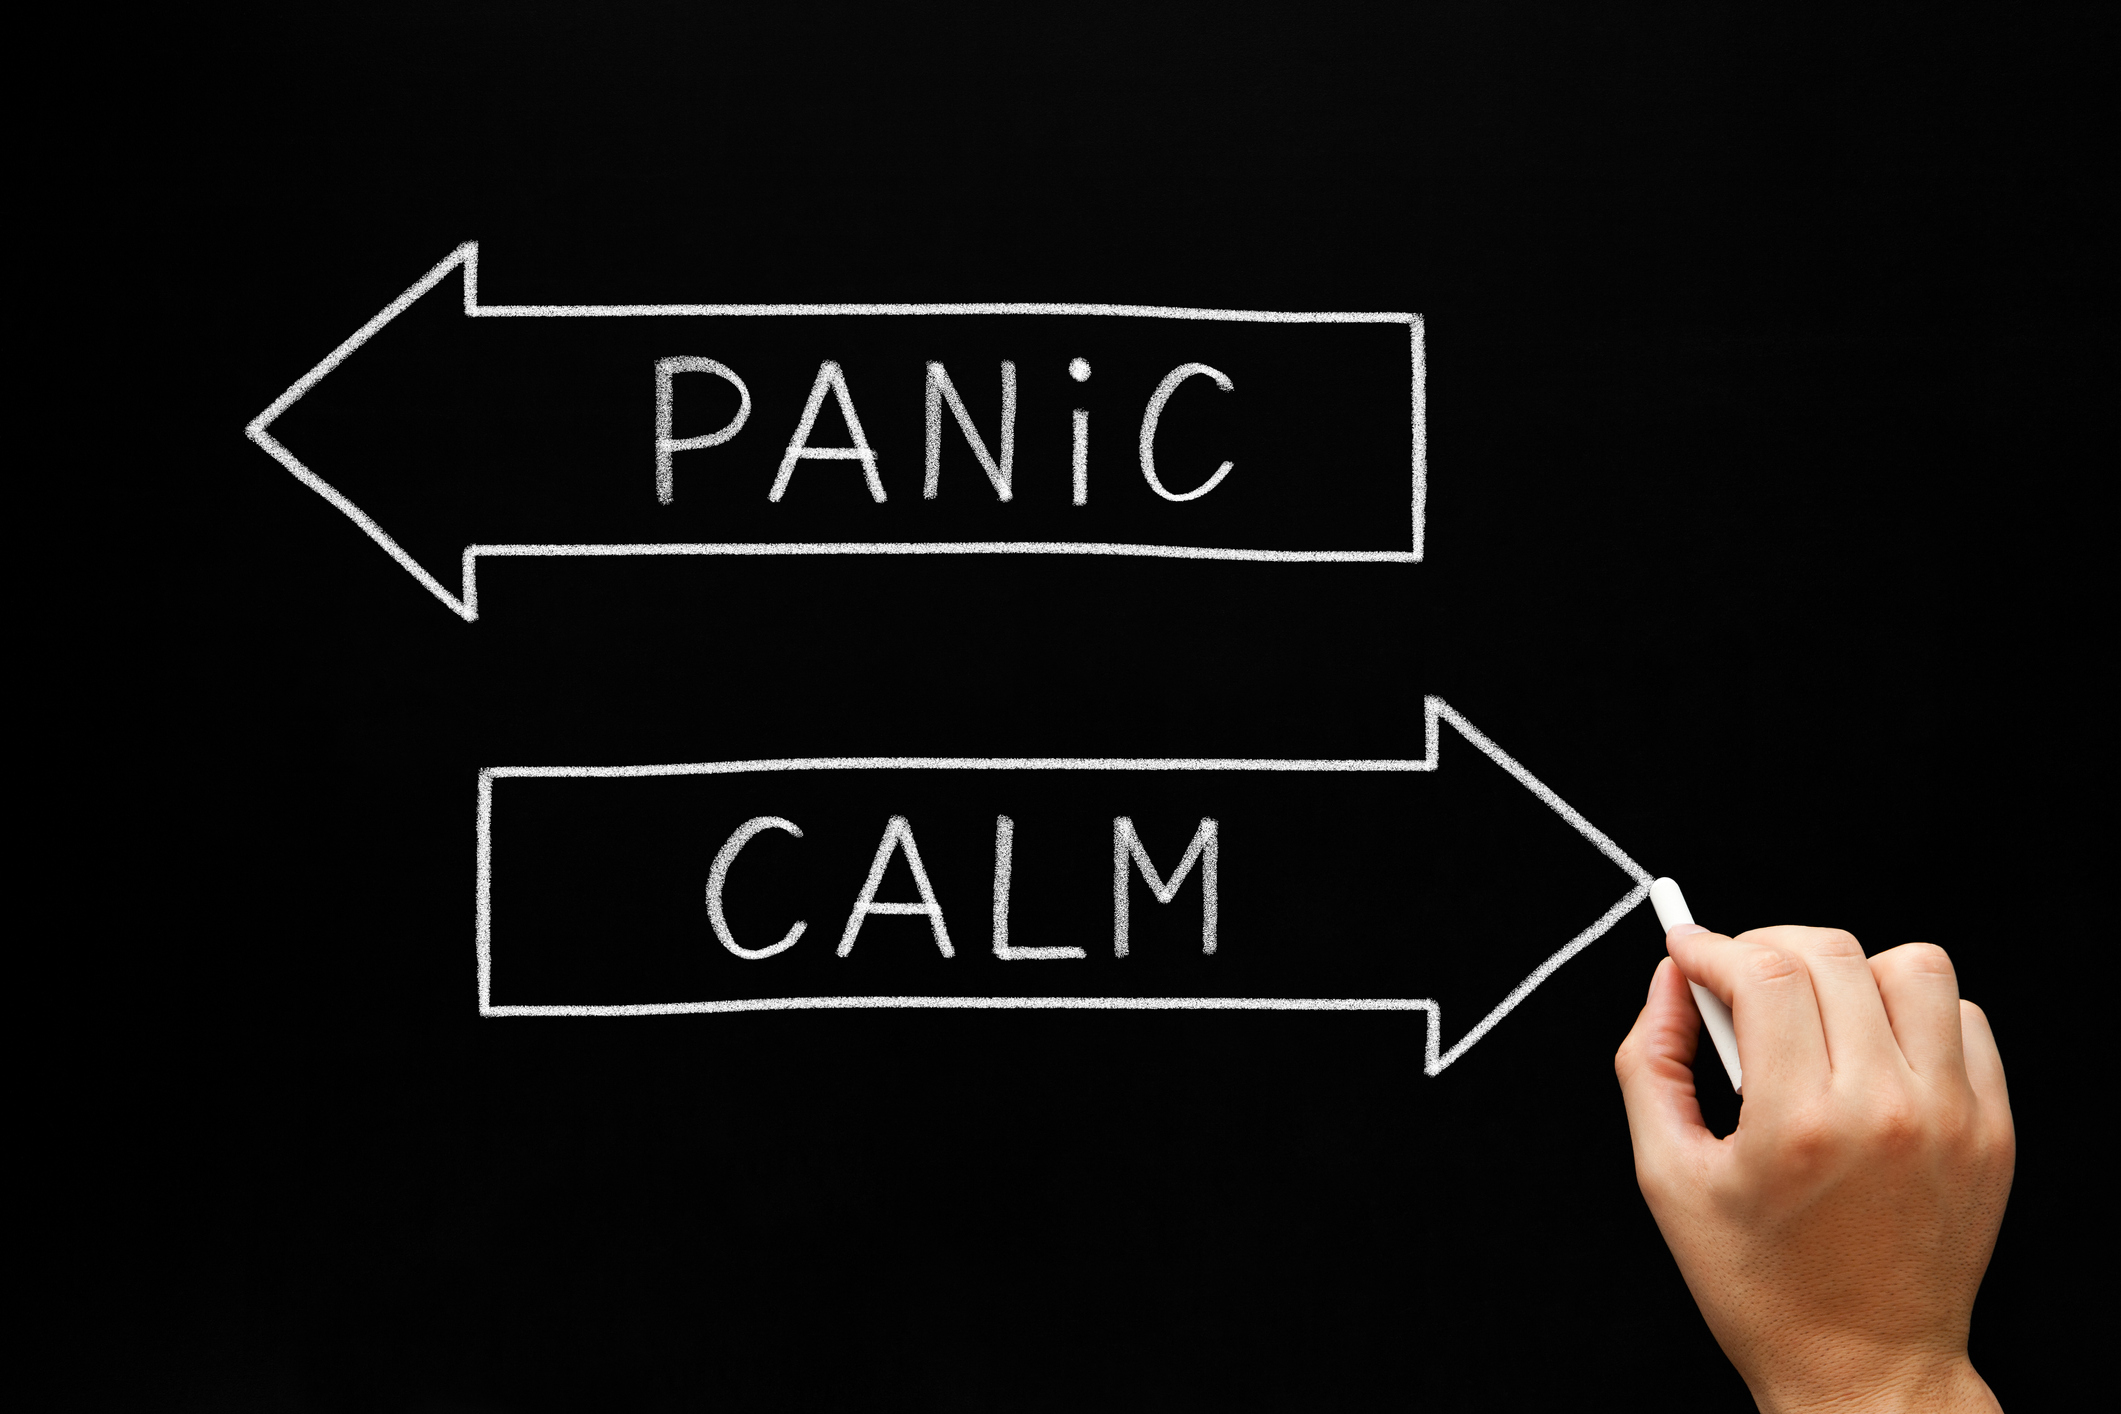 Hand drawing Panic or Calm concept with white chalk on blackboard.